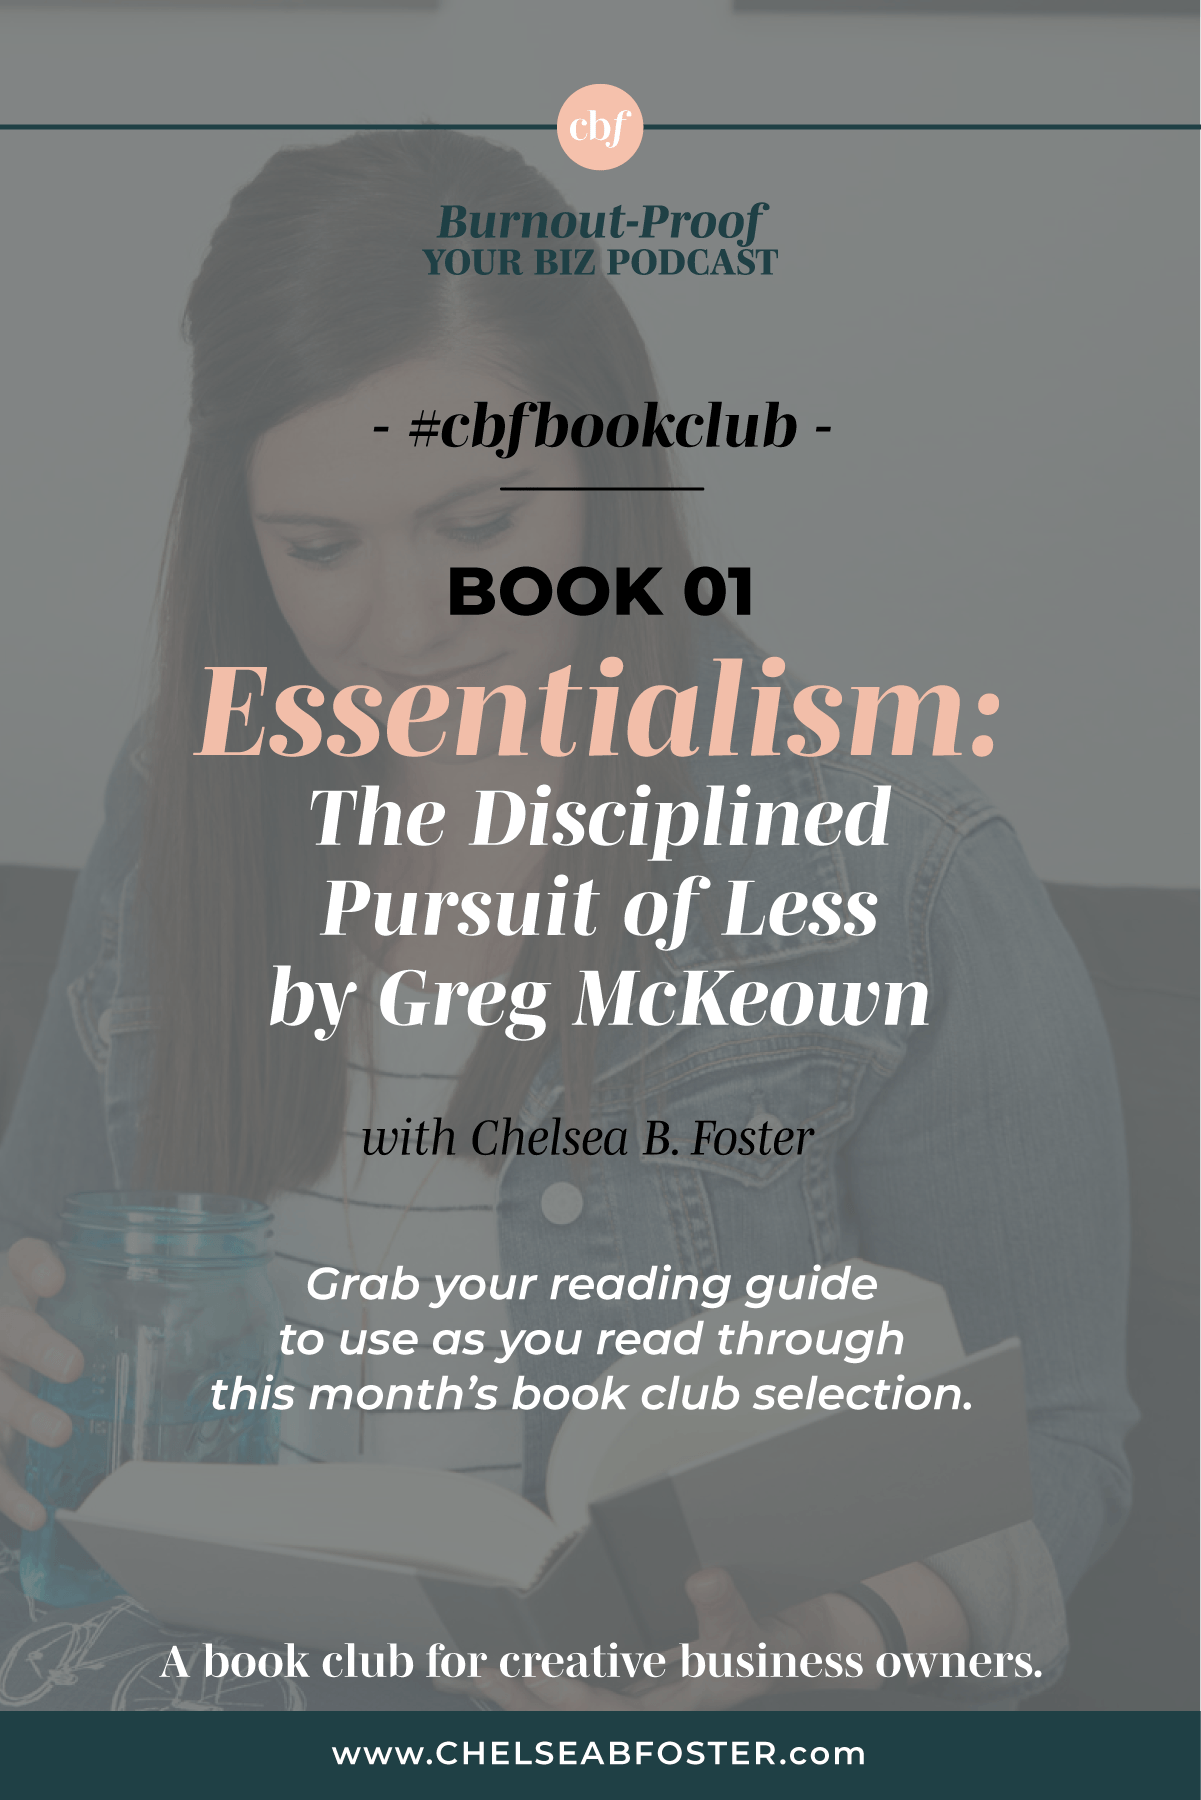 Burnout-Proof Your Biz with Chelsea B Foster | #cbfbookclub - Essentialism: The Disciplined Pursuit of Less by Greg McKeown. Download your reading guide now at www.chelseabfoster.com/cbfbookclub